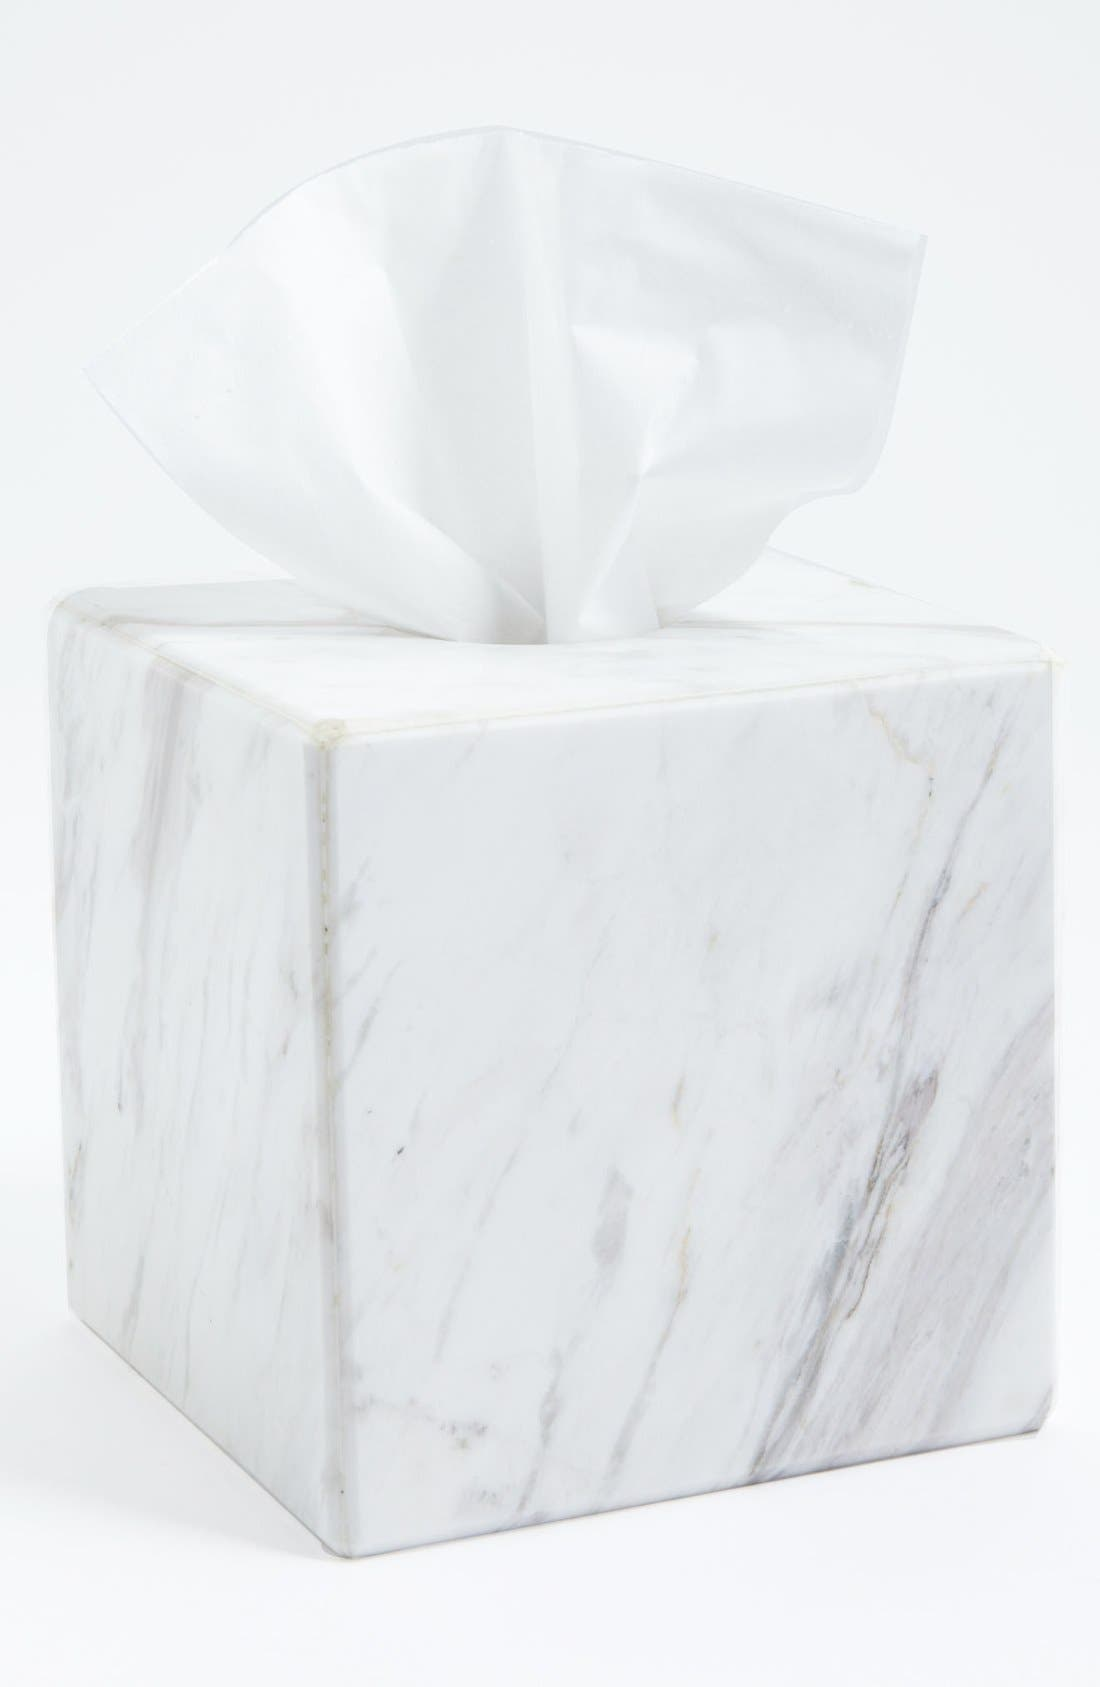 Alternate Image 1 Selected - Waterworks Studio 'Luna' White Marble Tissue Cover (Online Only)